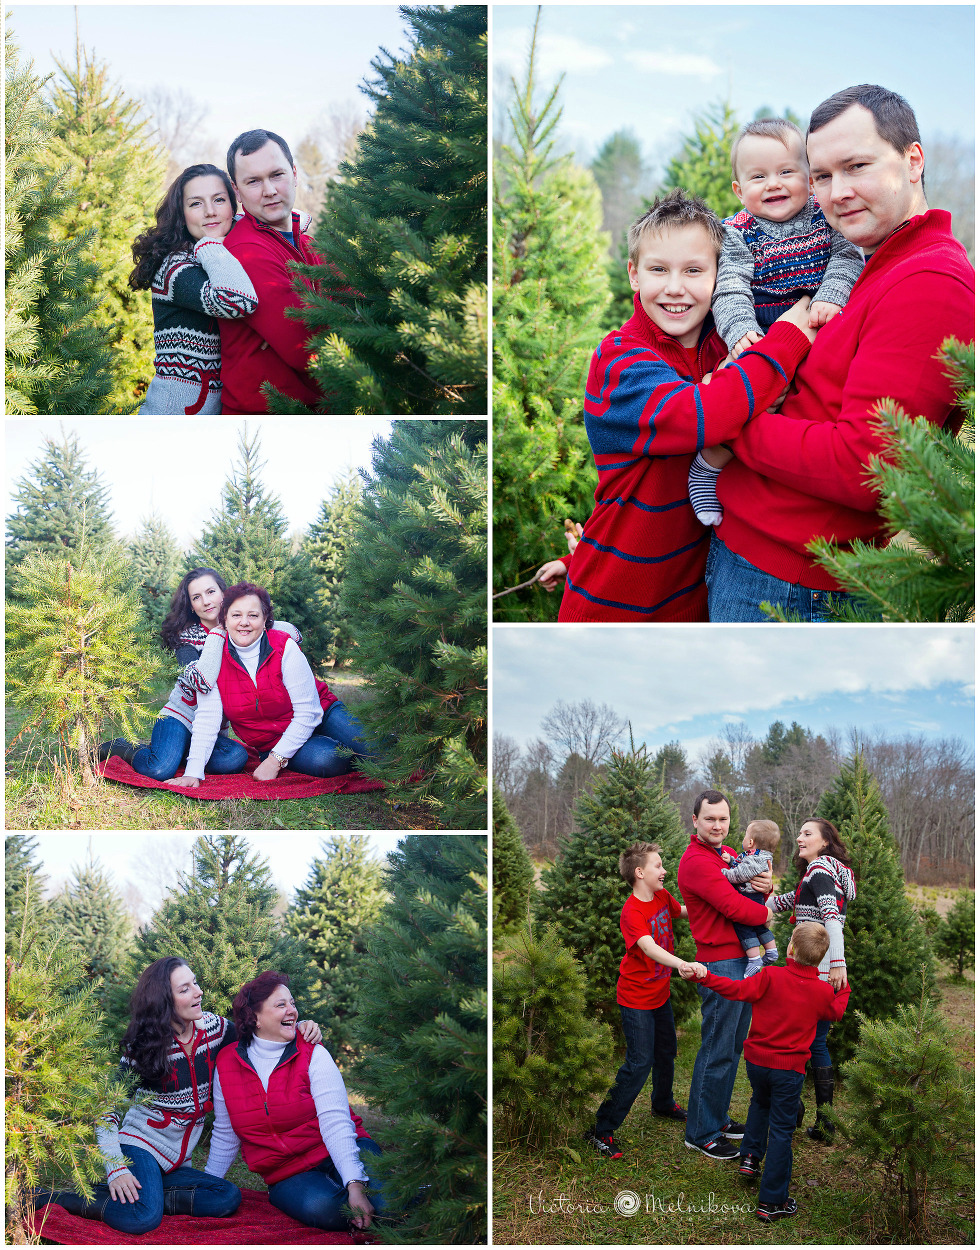 Holiday photo ideas for family